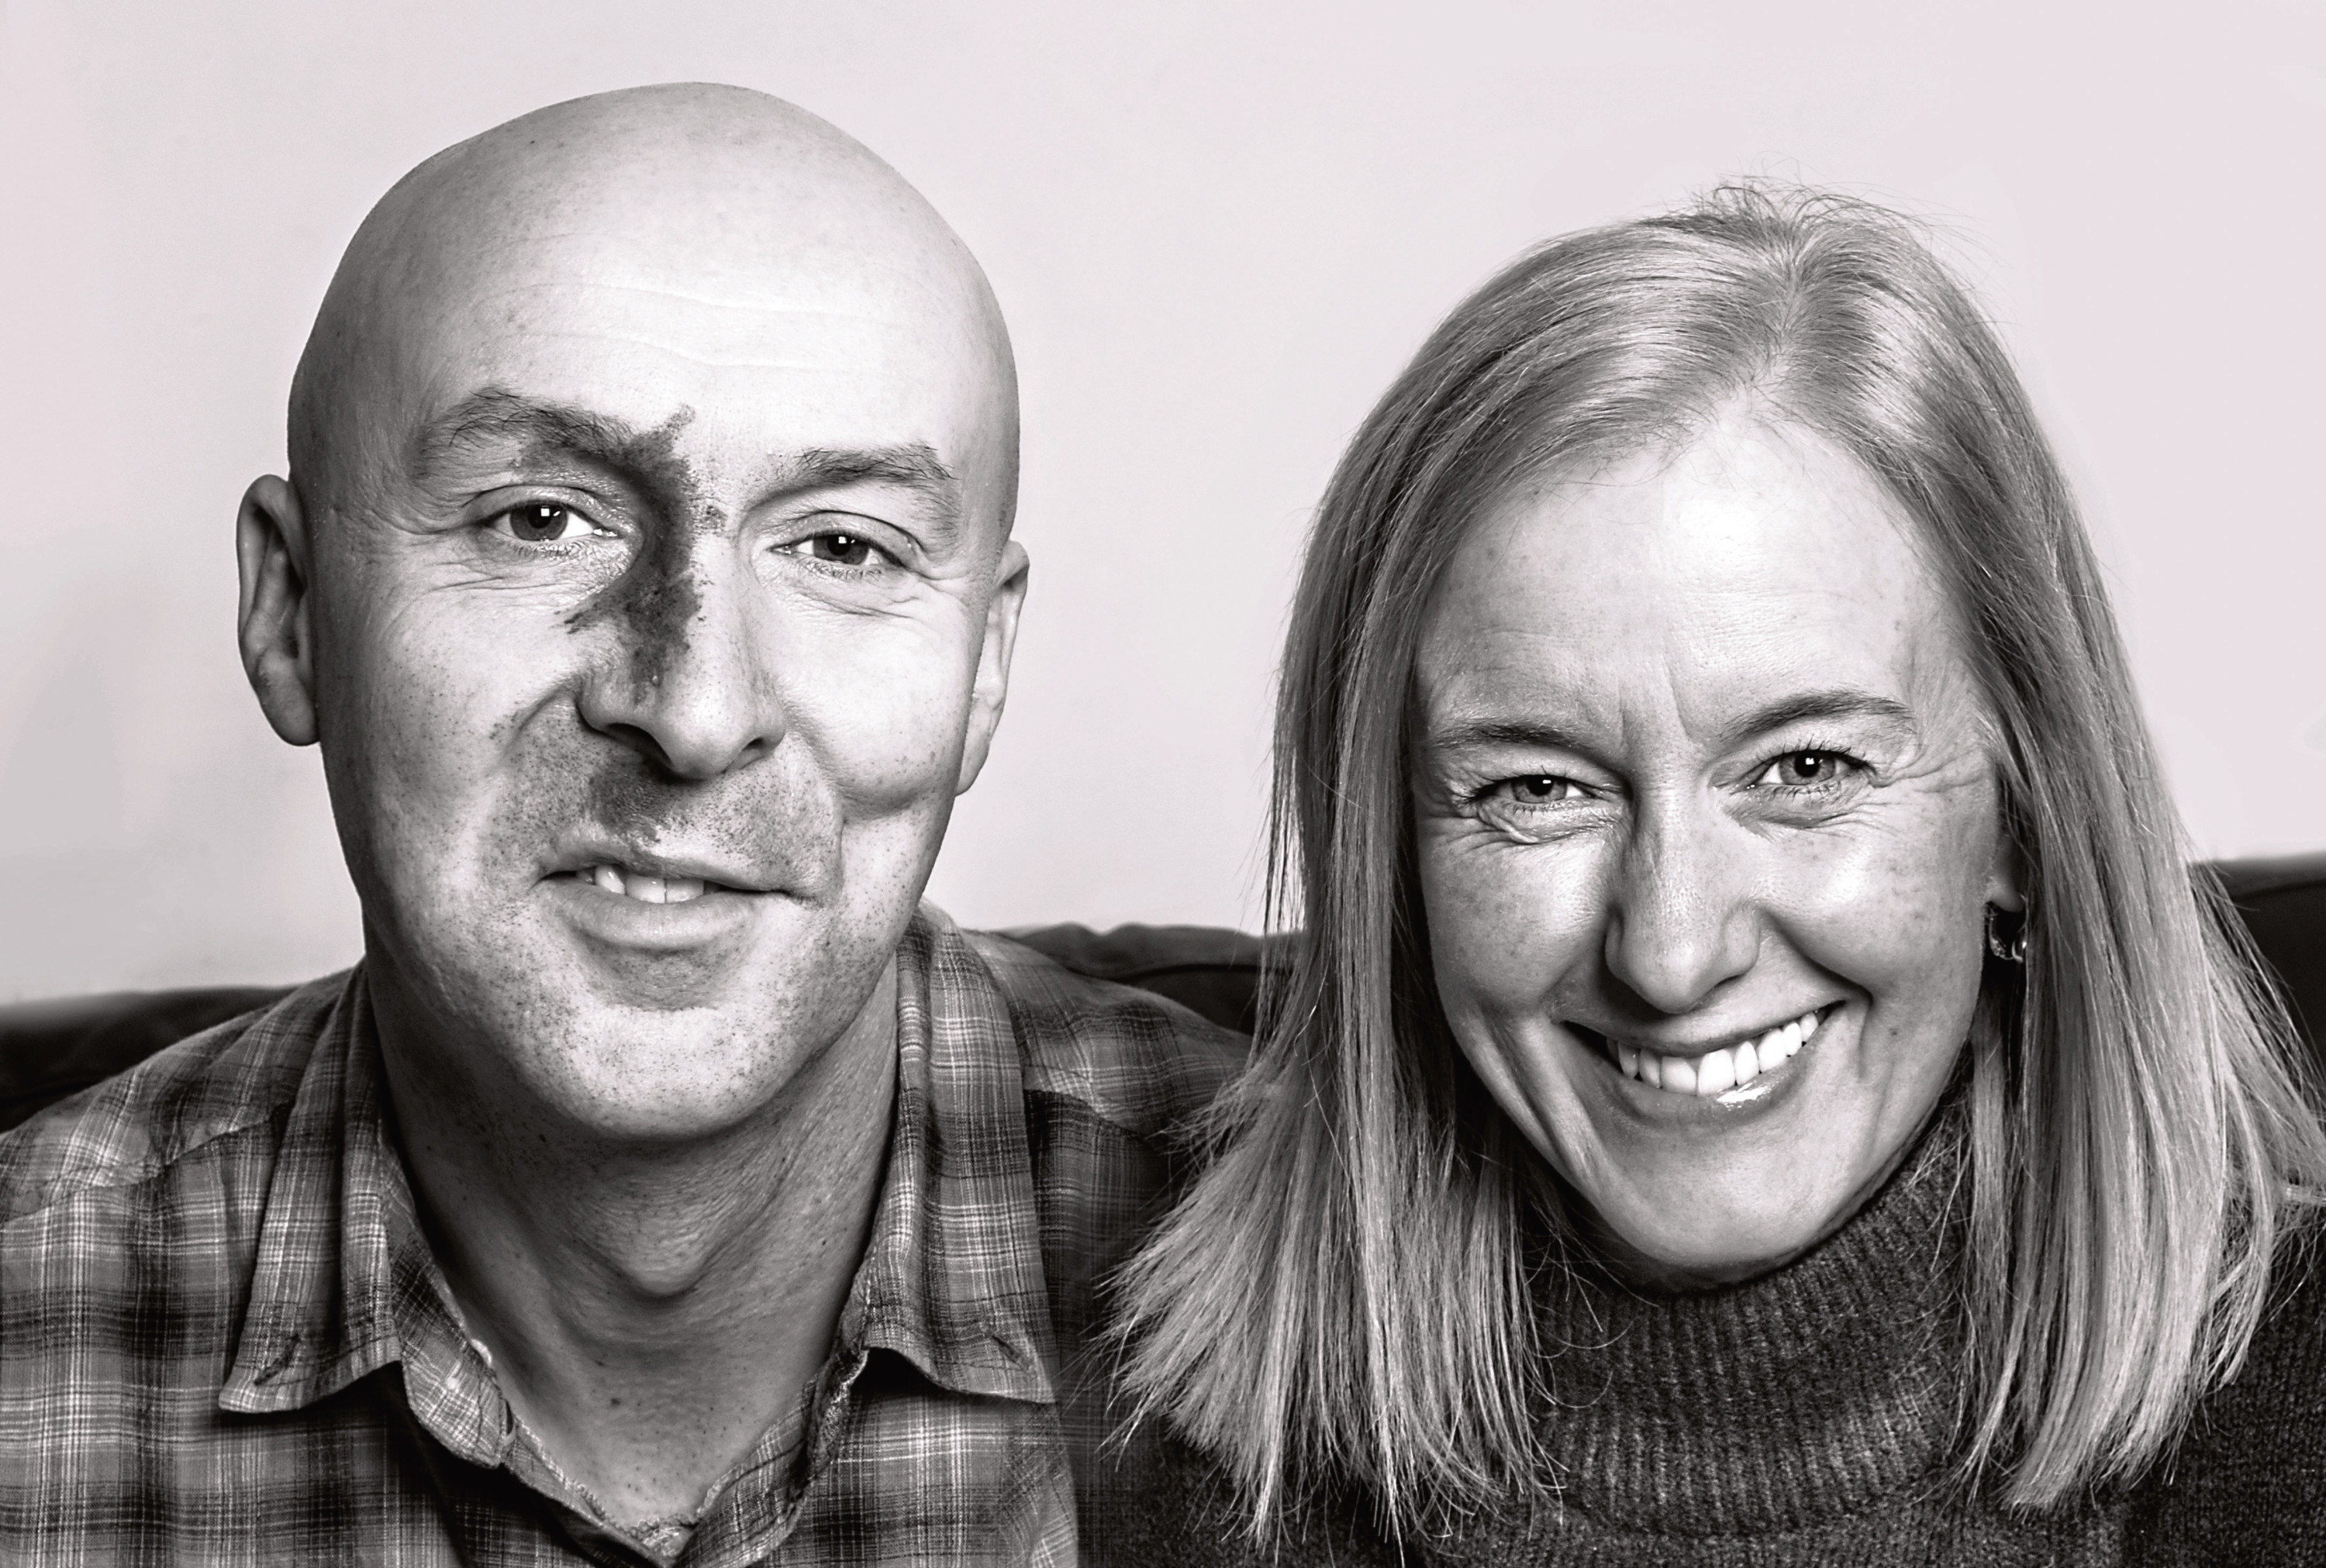 Marisa Haetzman and Chris Brookmyre, who write under the pseudonym Ambrose Parry, will discuss their new book The Way of All Flesh